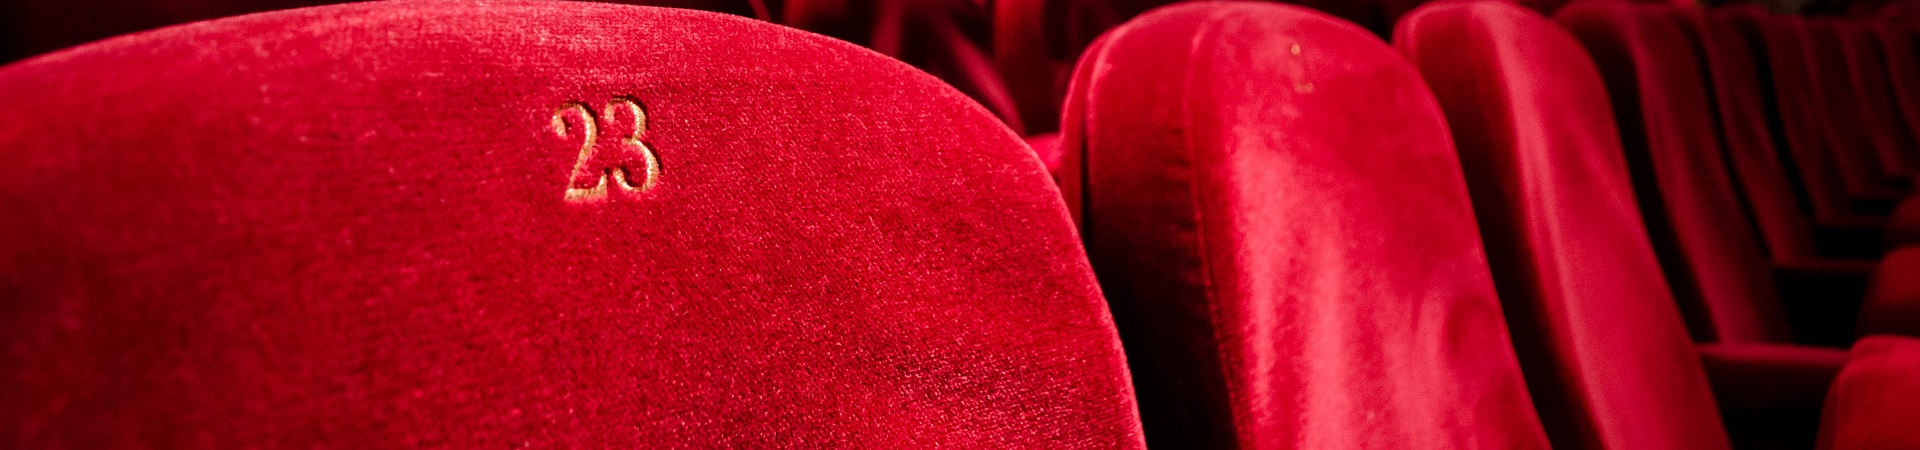 Close-up of a row of red velvet seats at a theater.